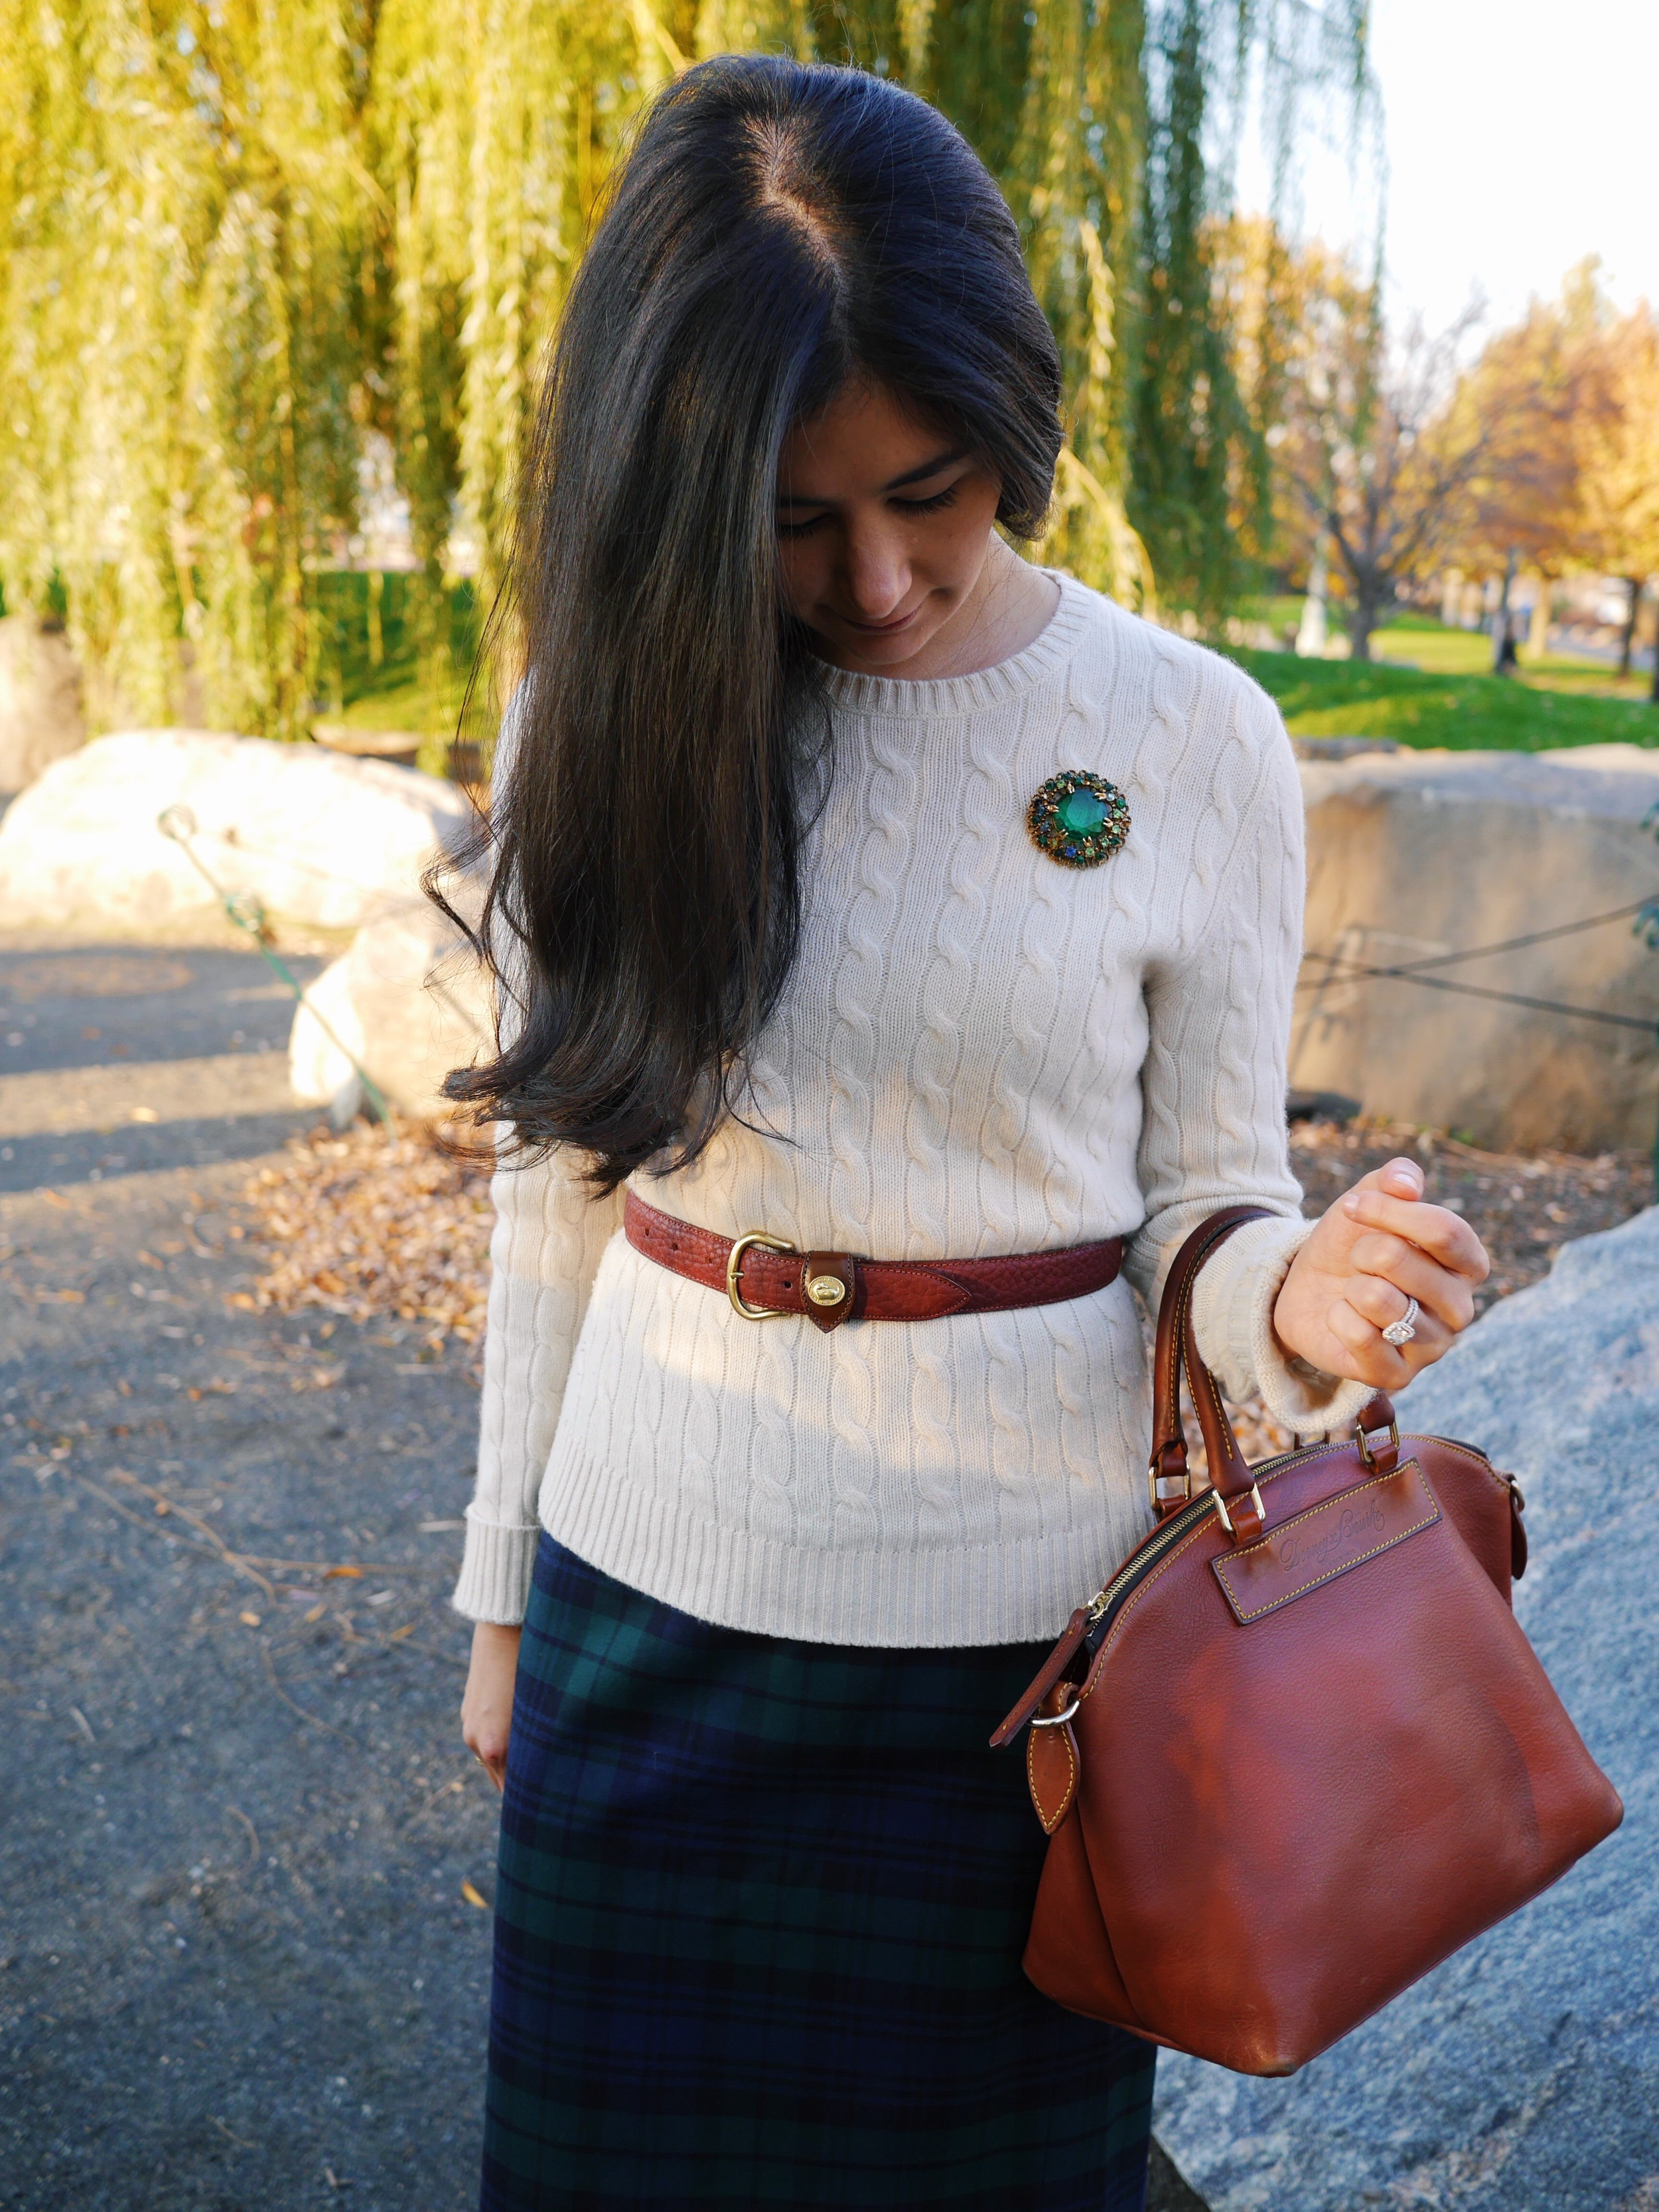 4 J Crew Blackwatch Pencil Skirt Cashmere Sweater Dooney and Bourke Belt Dooney and Bourke Purse Salvatore Ferragamo Boots Vintage Brooch David Yurman Cable Rings.jpeg